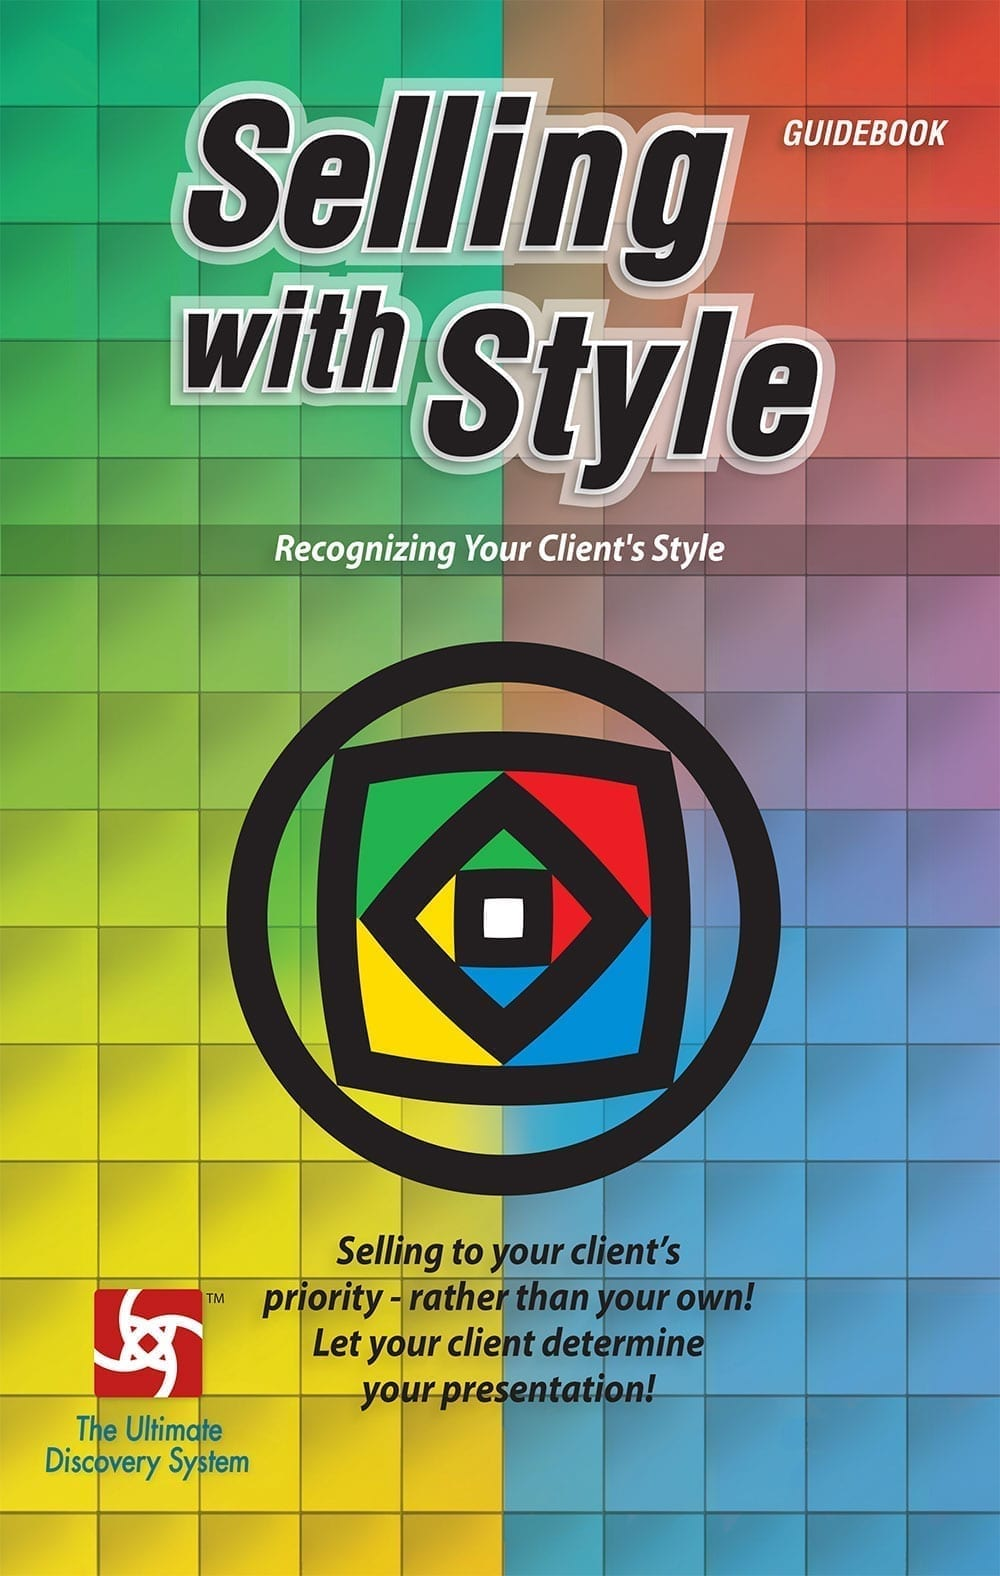 Selling With Style Booklet